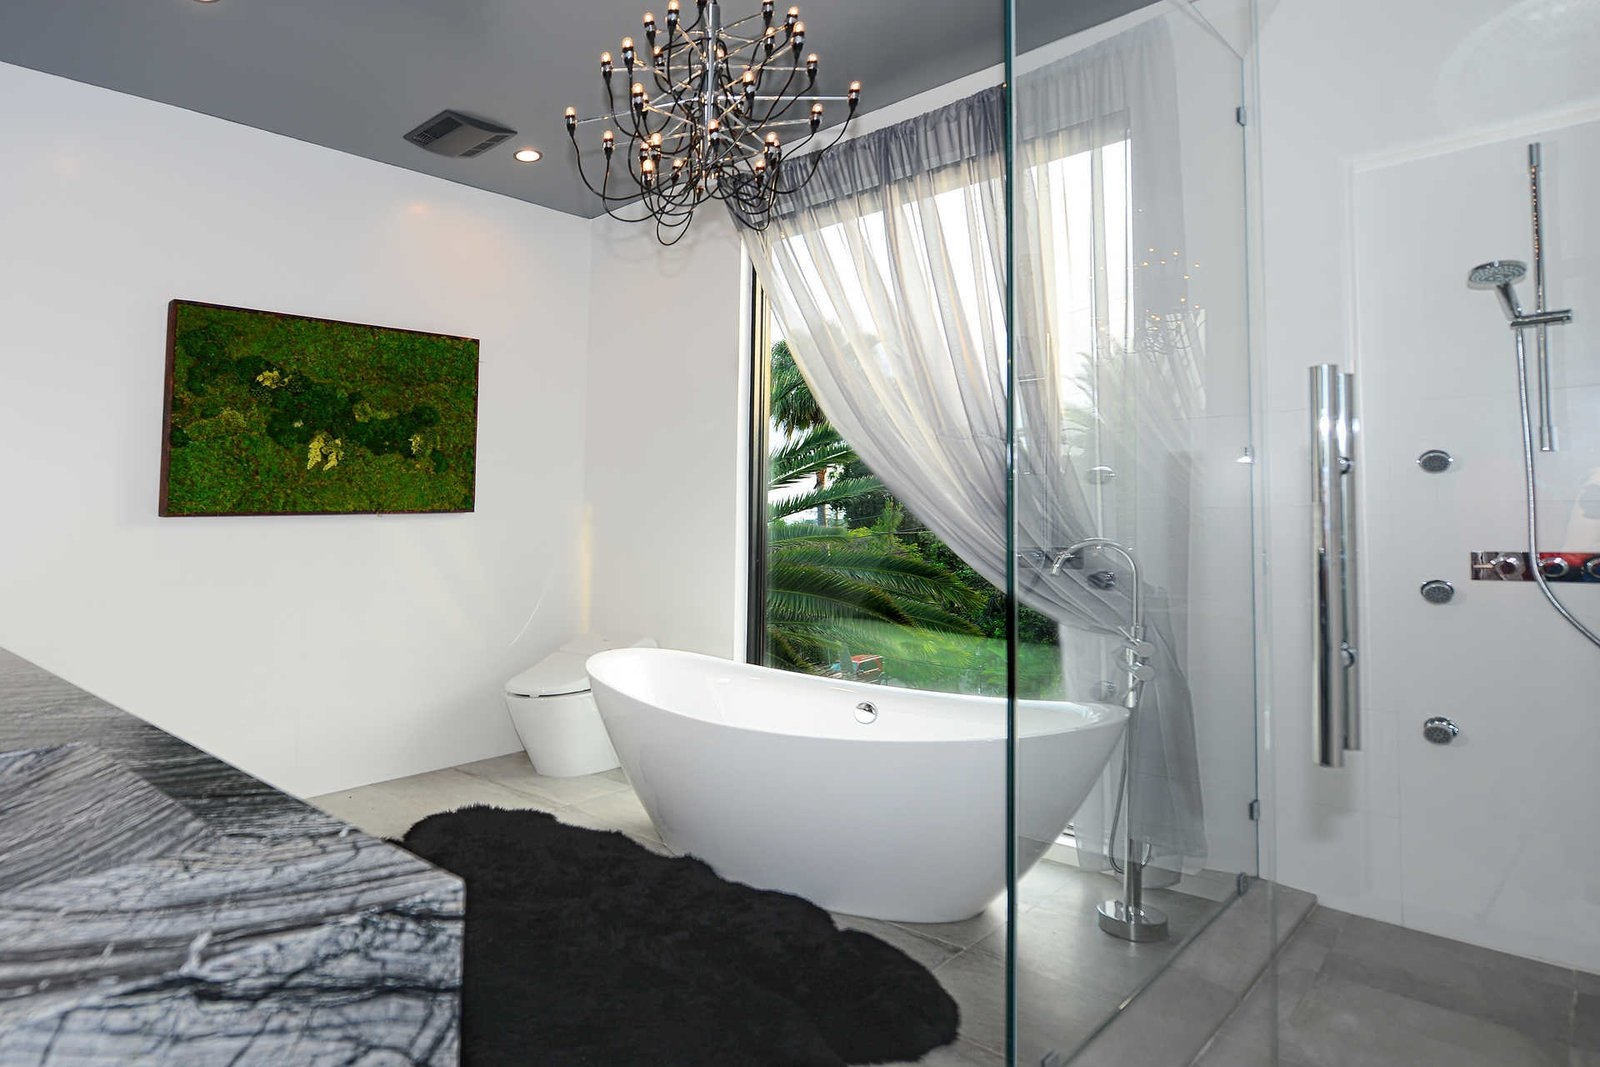 Tagged: Bath Room, Freestanding Tub, Soaking Tub, Enclosed Shower, and Corner Shower.  Italian Modernist Home by Zillow